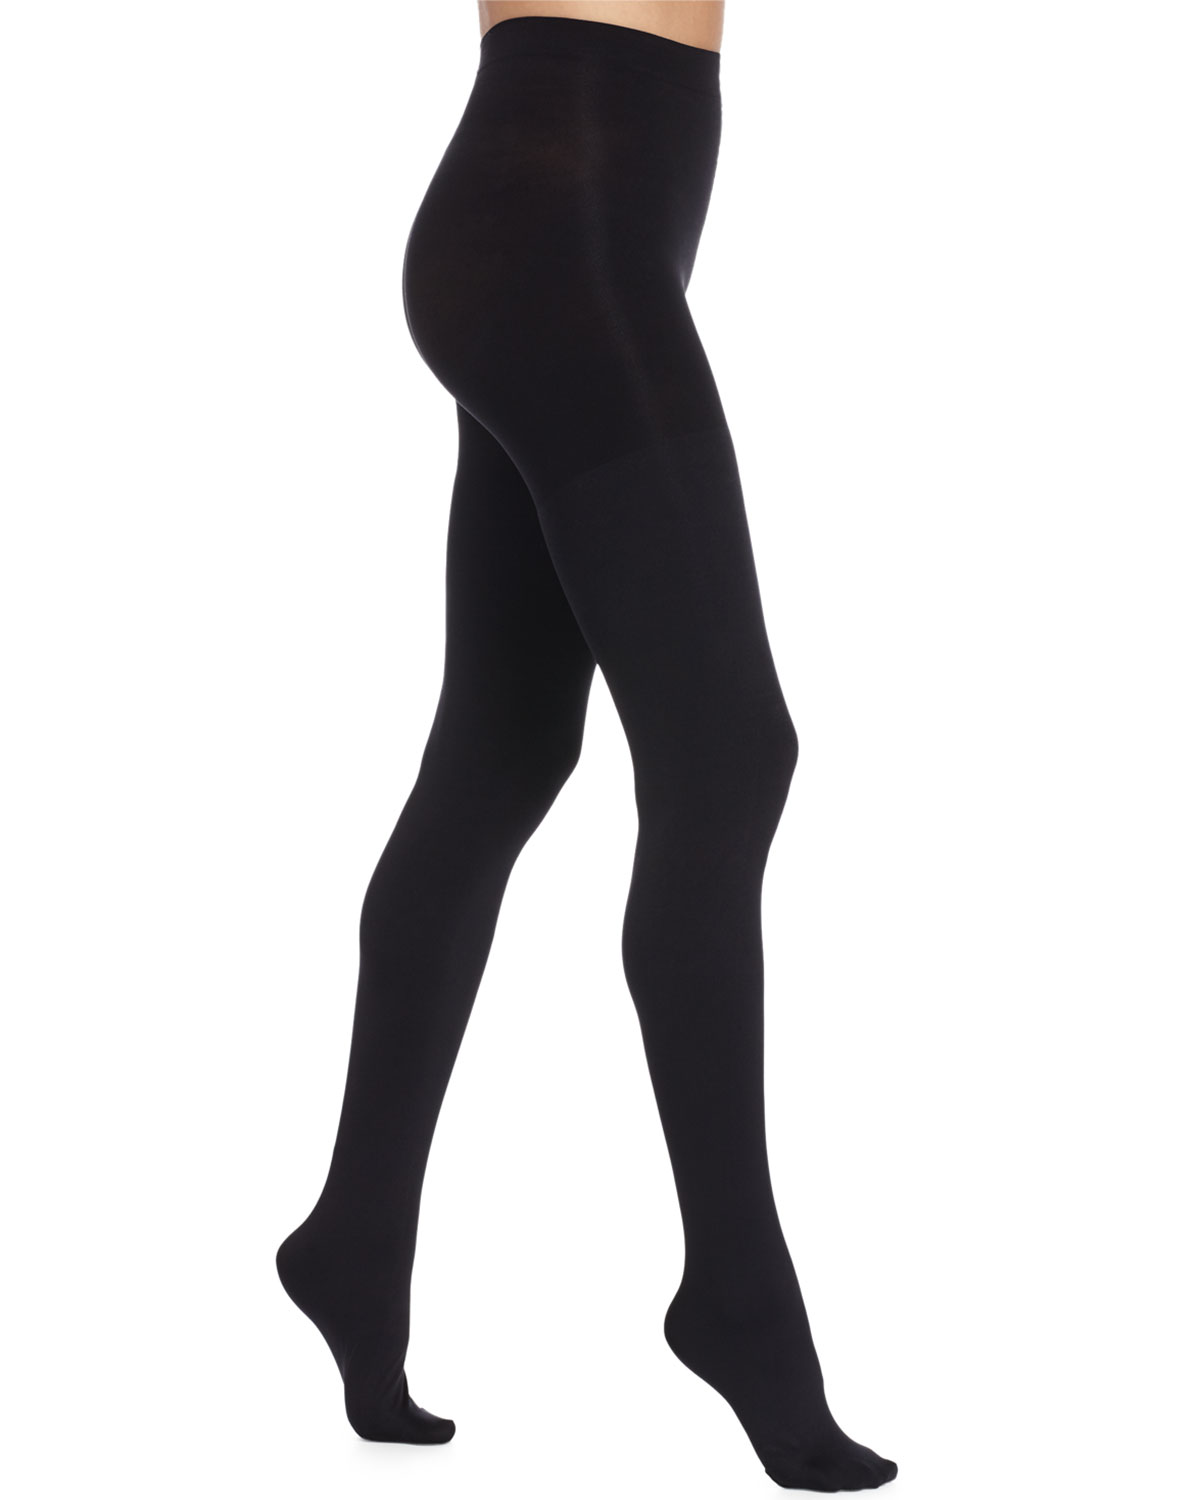 Spanx Luxe Blackout Opaque Tights, Very Black, Size: B